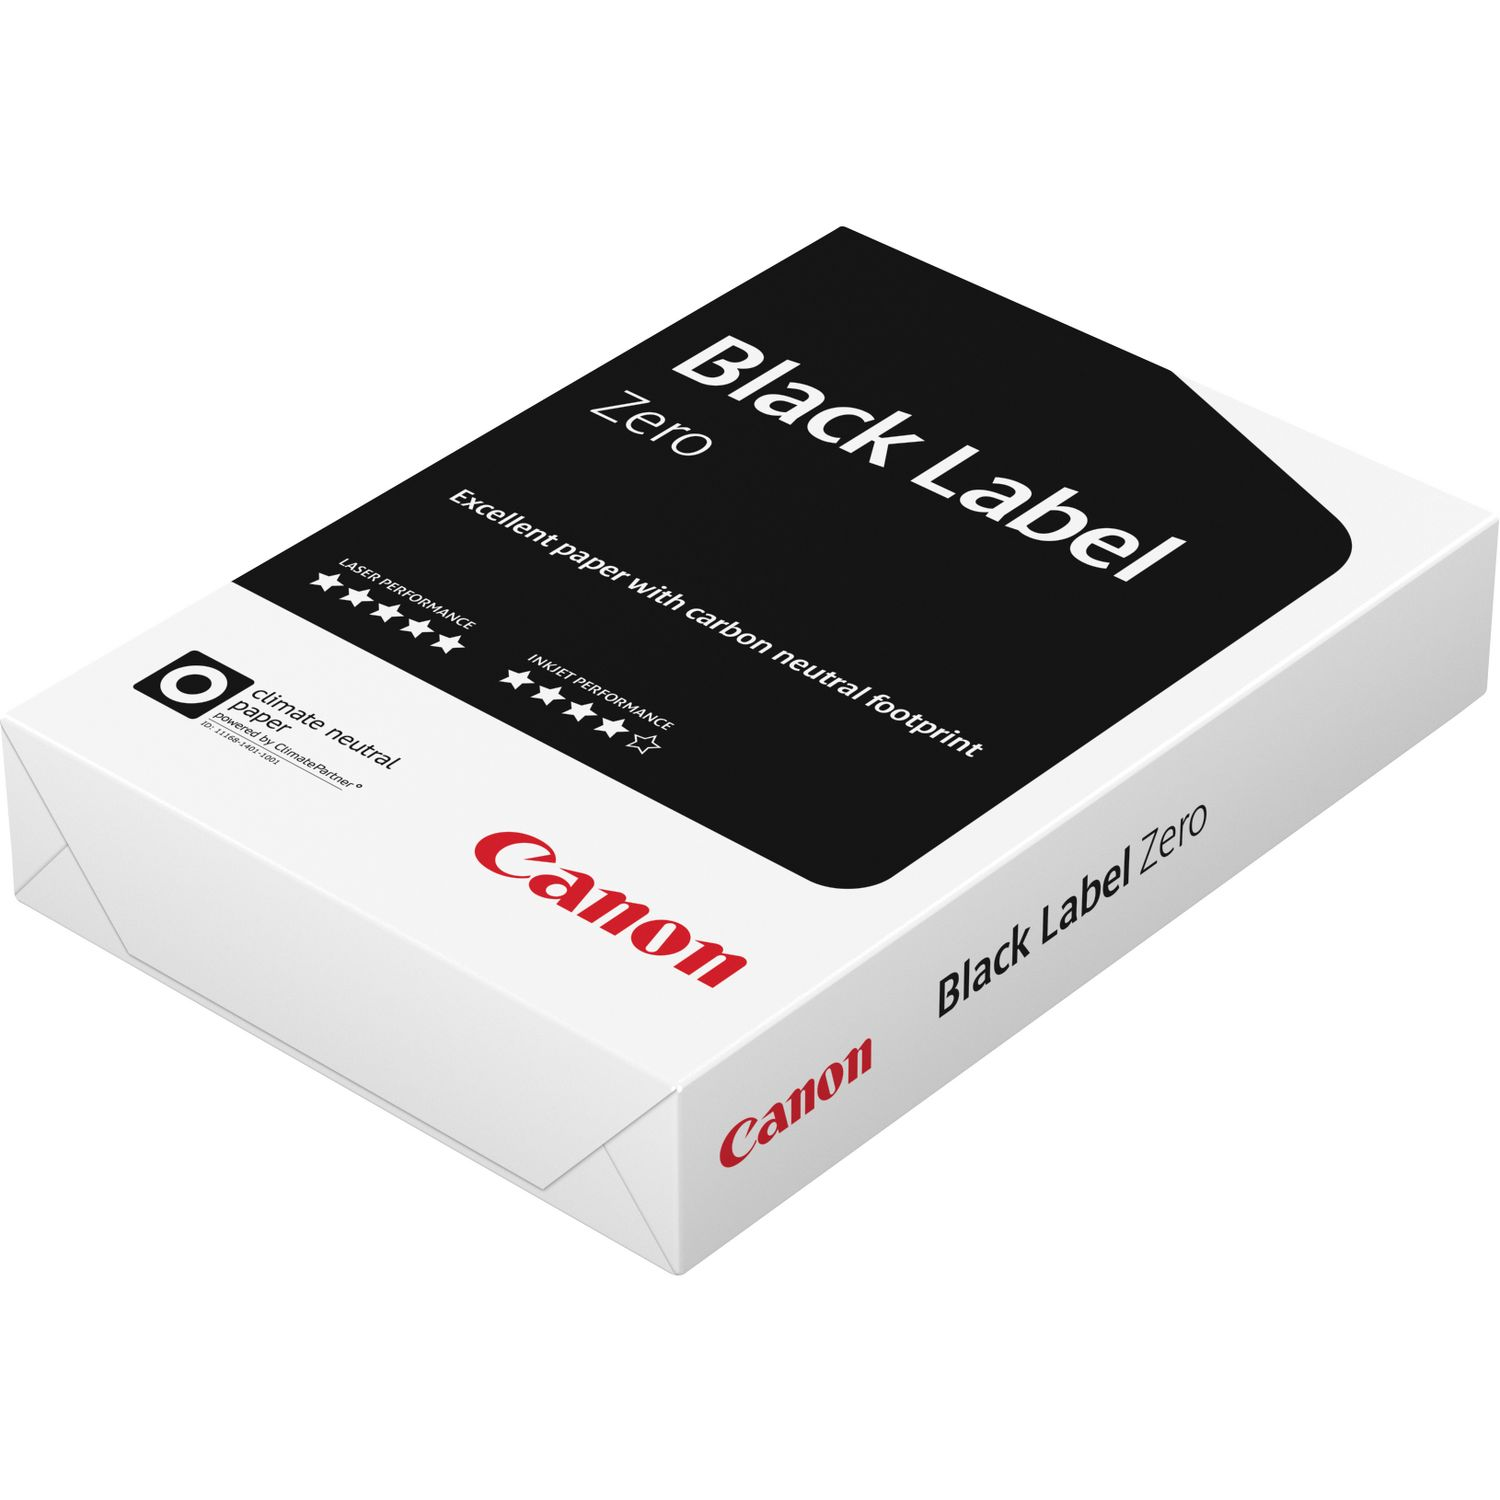 buy canon black label zero fsc 80 g m a4 paper 500 sheets canon uk store. Black Bedroom Furniture Sets. Home Design Ideas